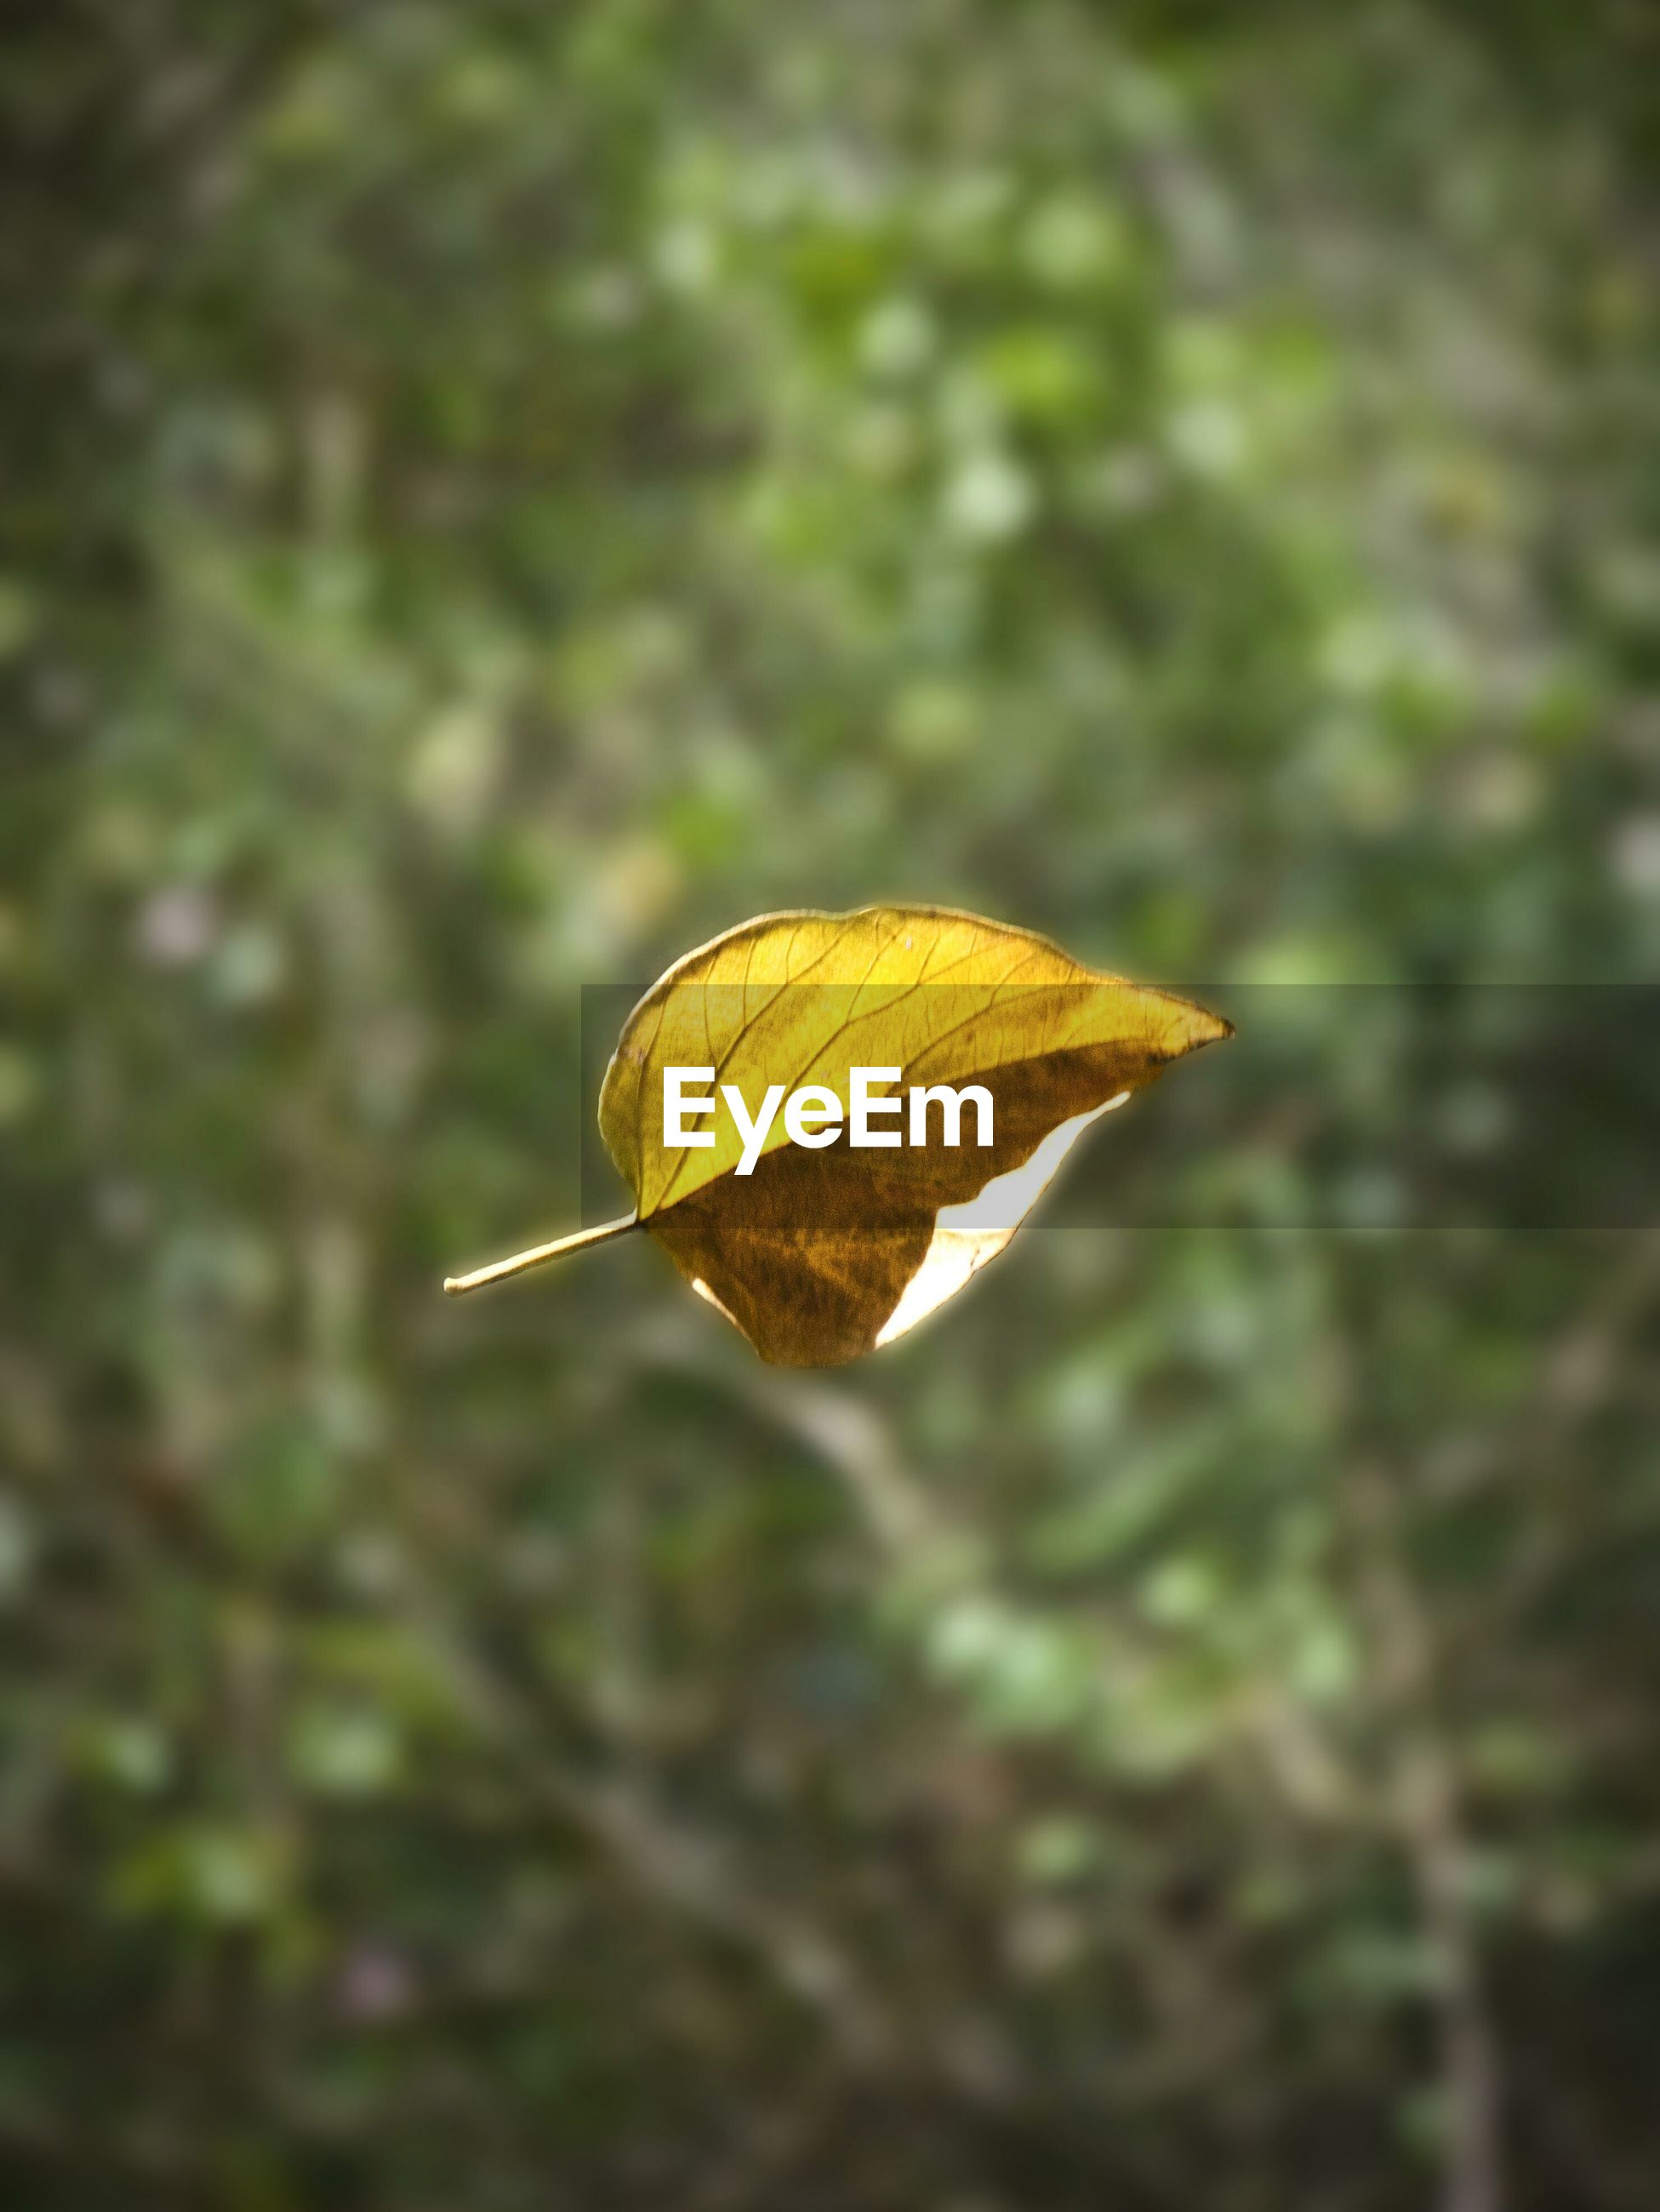 Dry leaf in mid-air during autumn